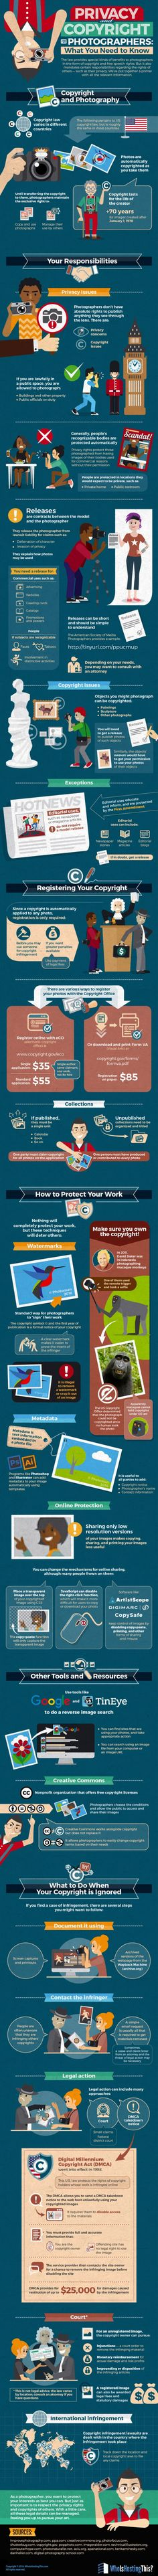 Photography & The Law: Privacy, Copyright & Your Rights